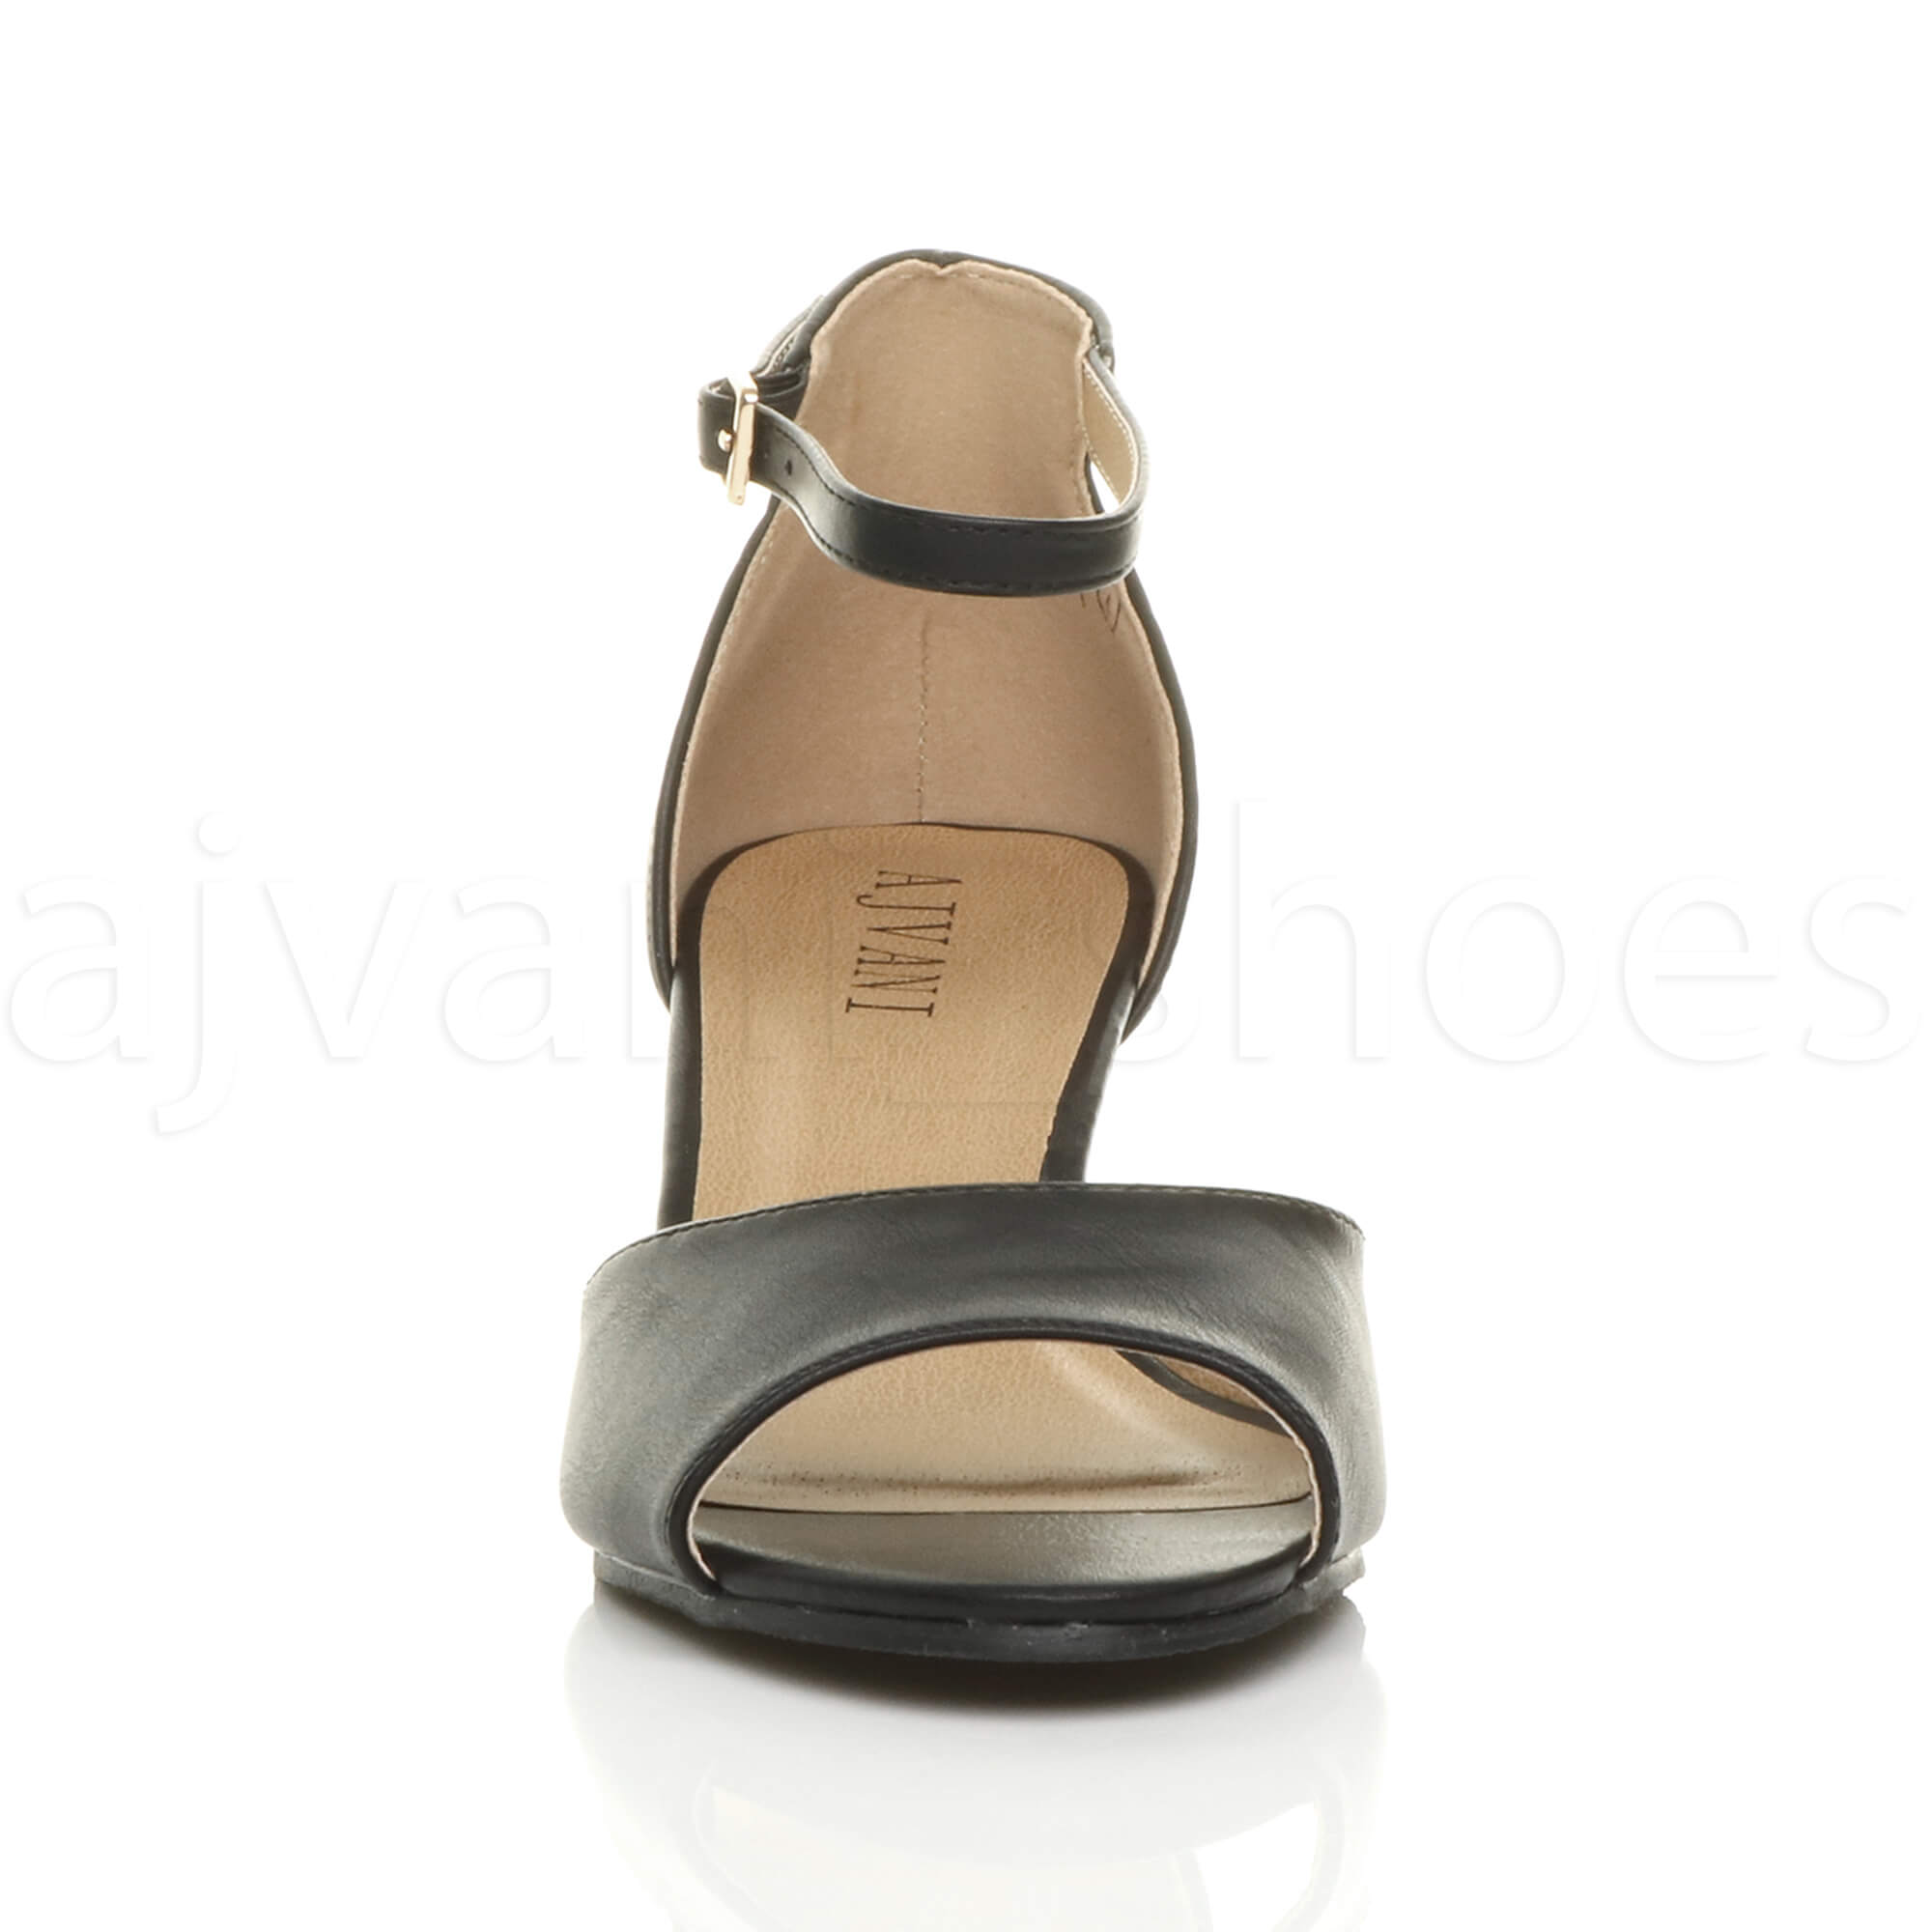 WOMENS-LADIES-LOW-MID-WEDGE-HEEL-ANKLE-STRAP-SMART-CASUAL-EVENING-SANDALS-SIZE thumbnail 7